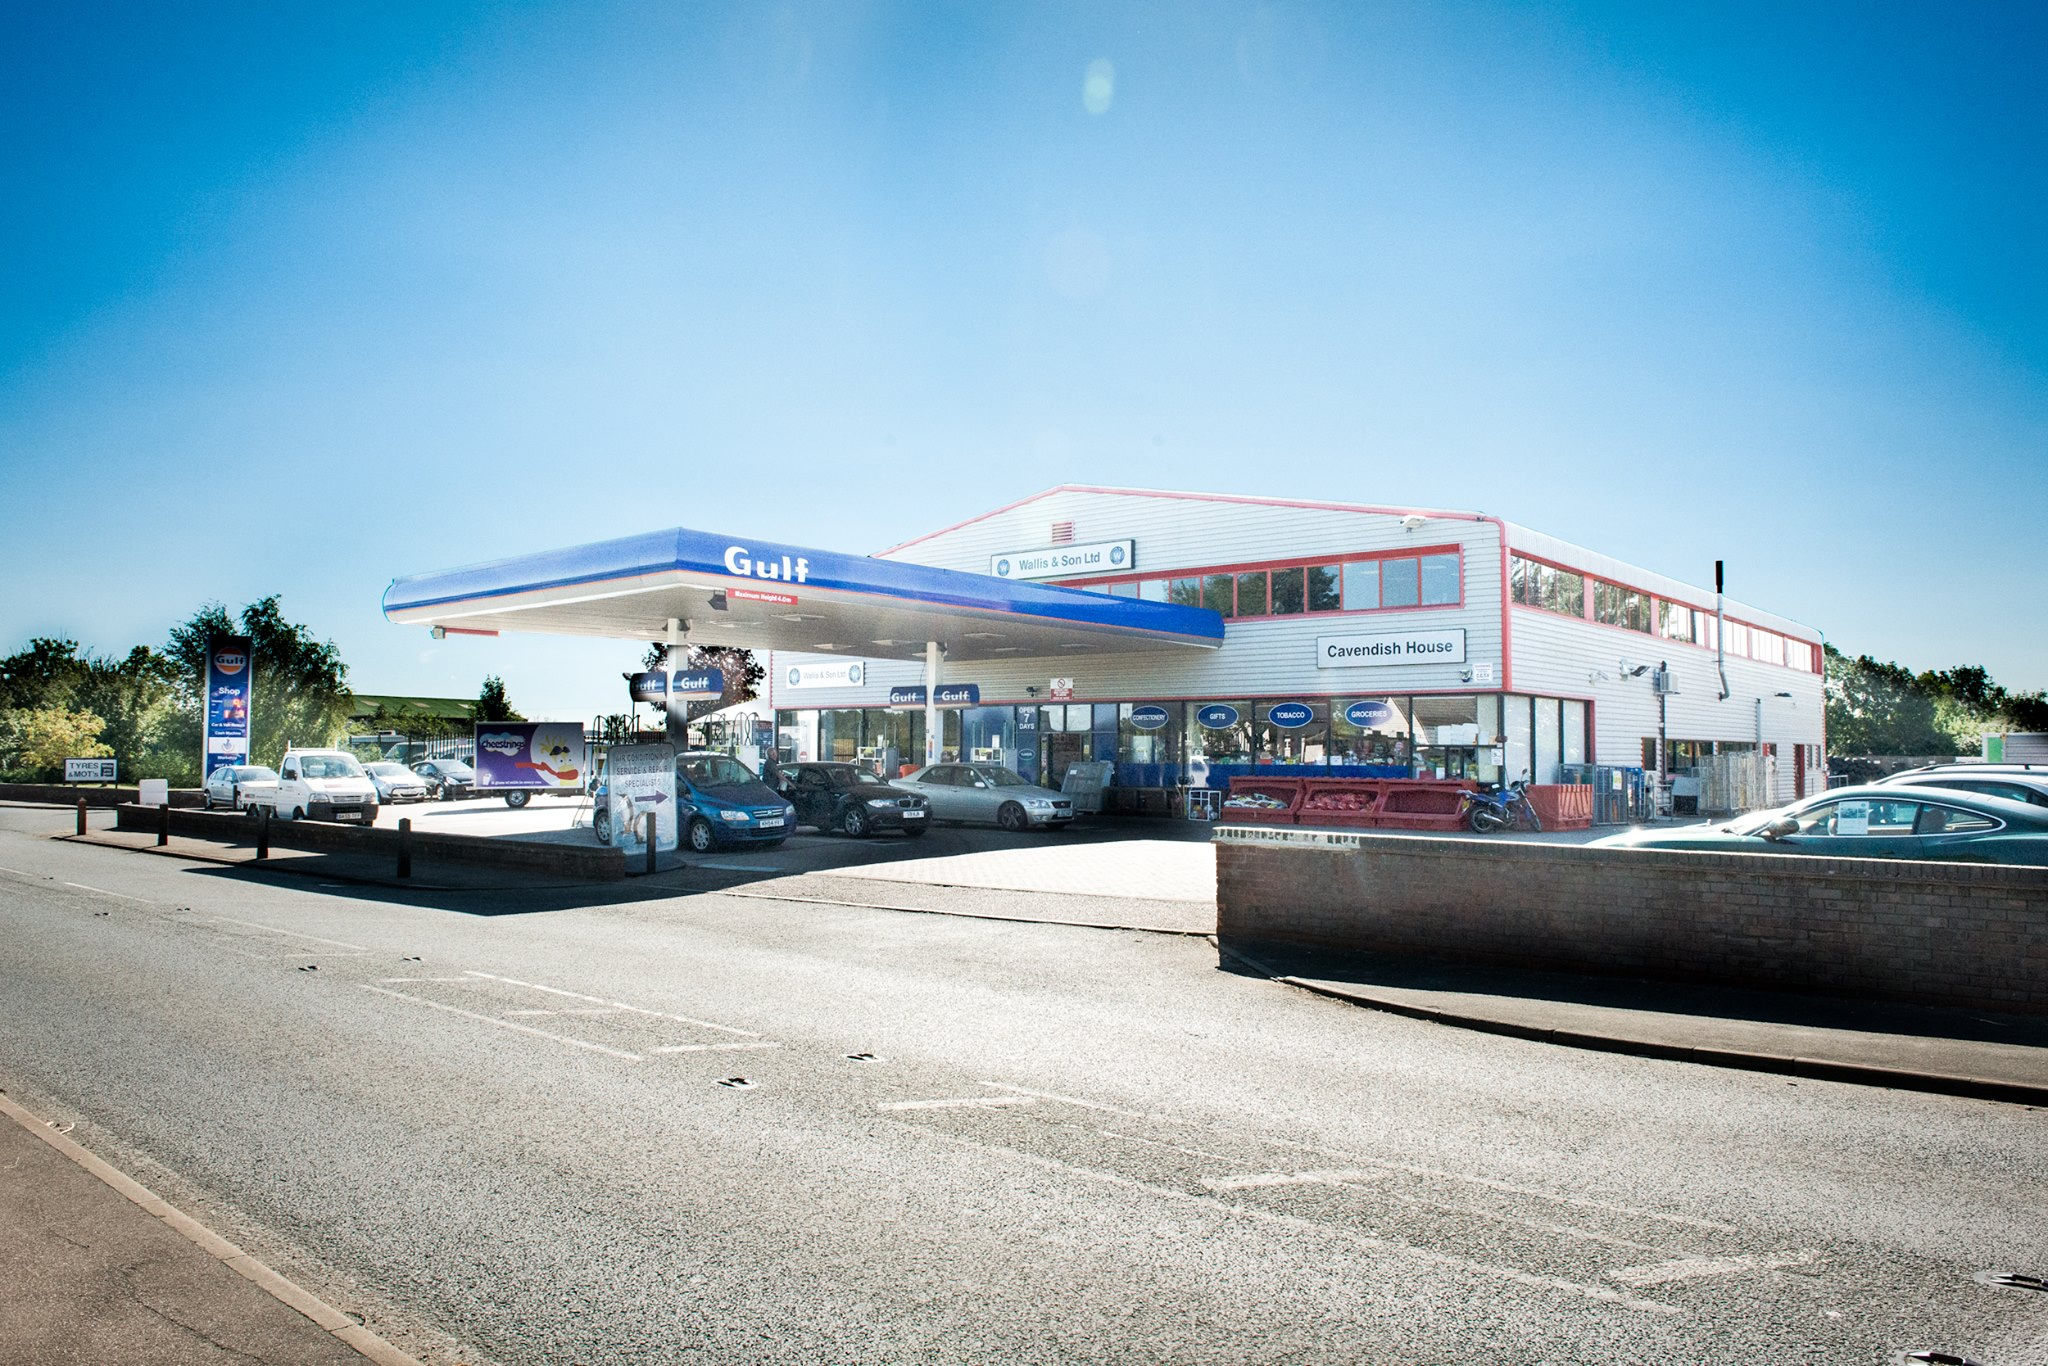 An image of the Wallis & Son forecourt filling up station